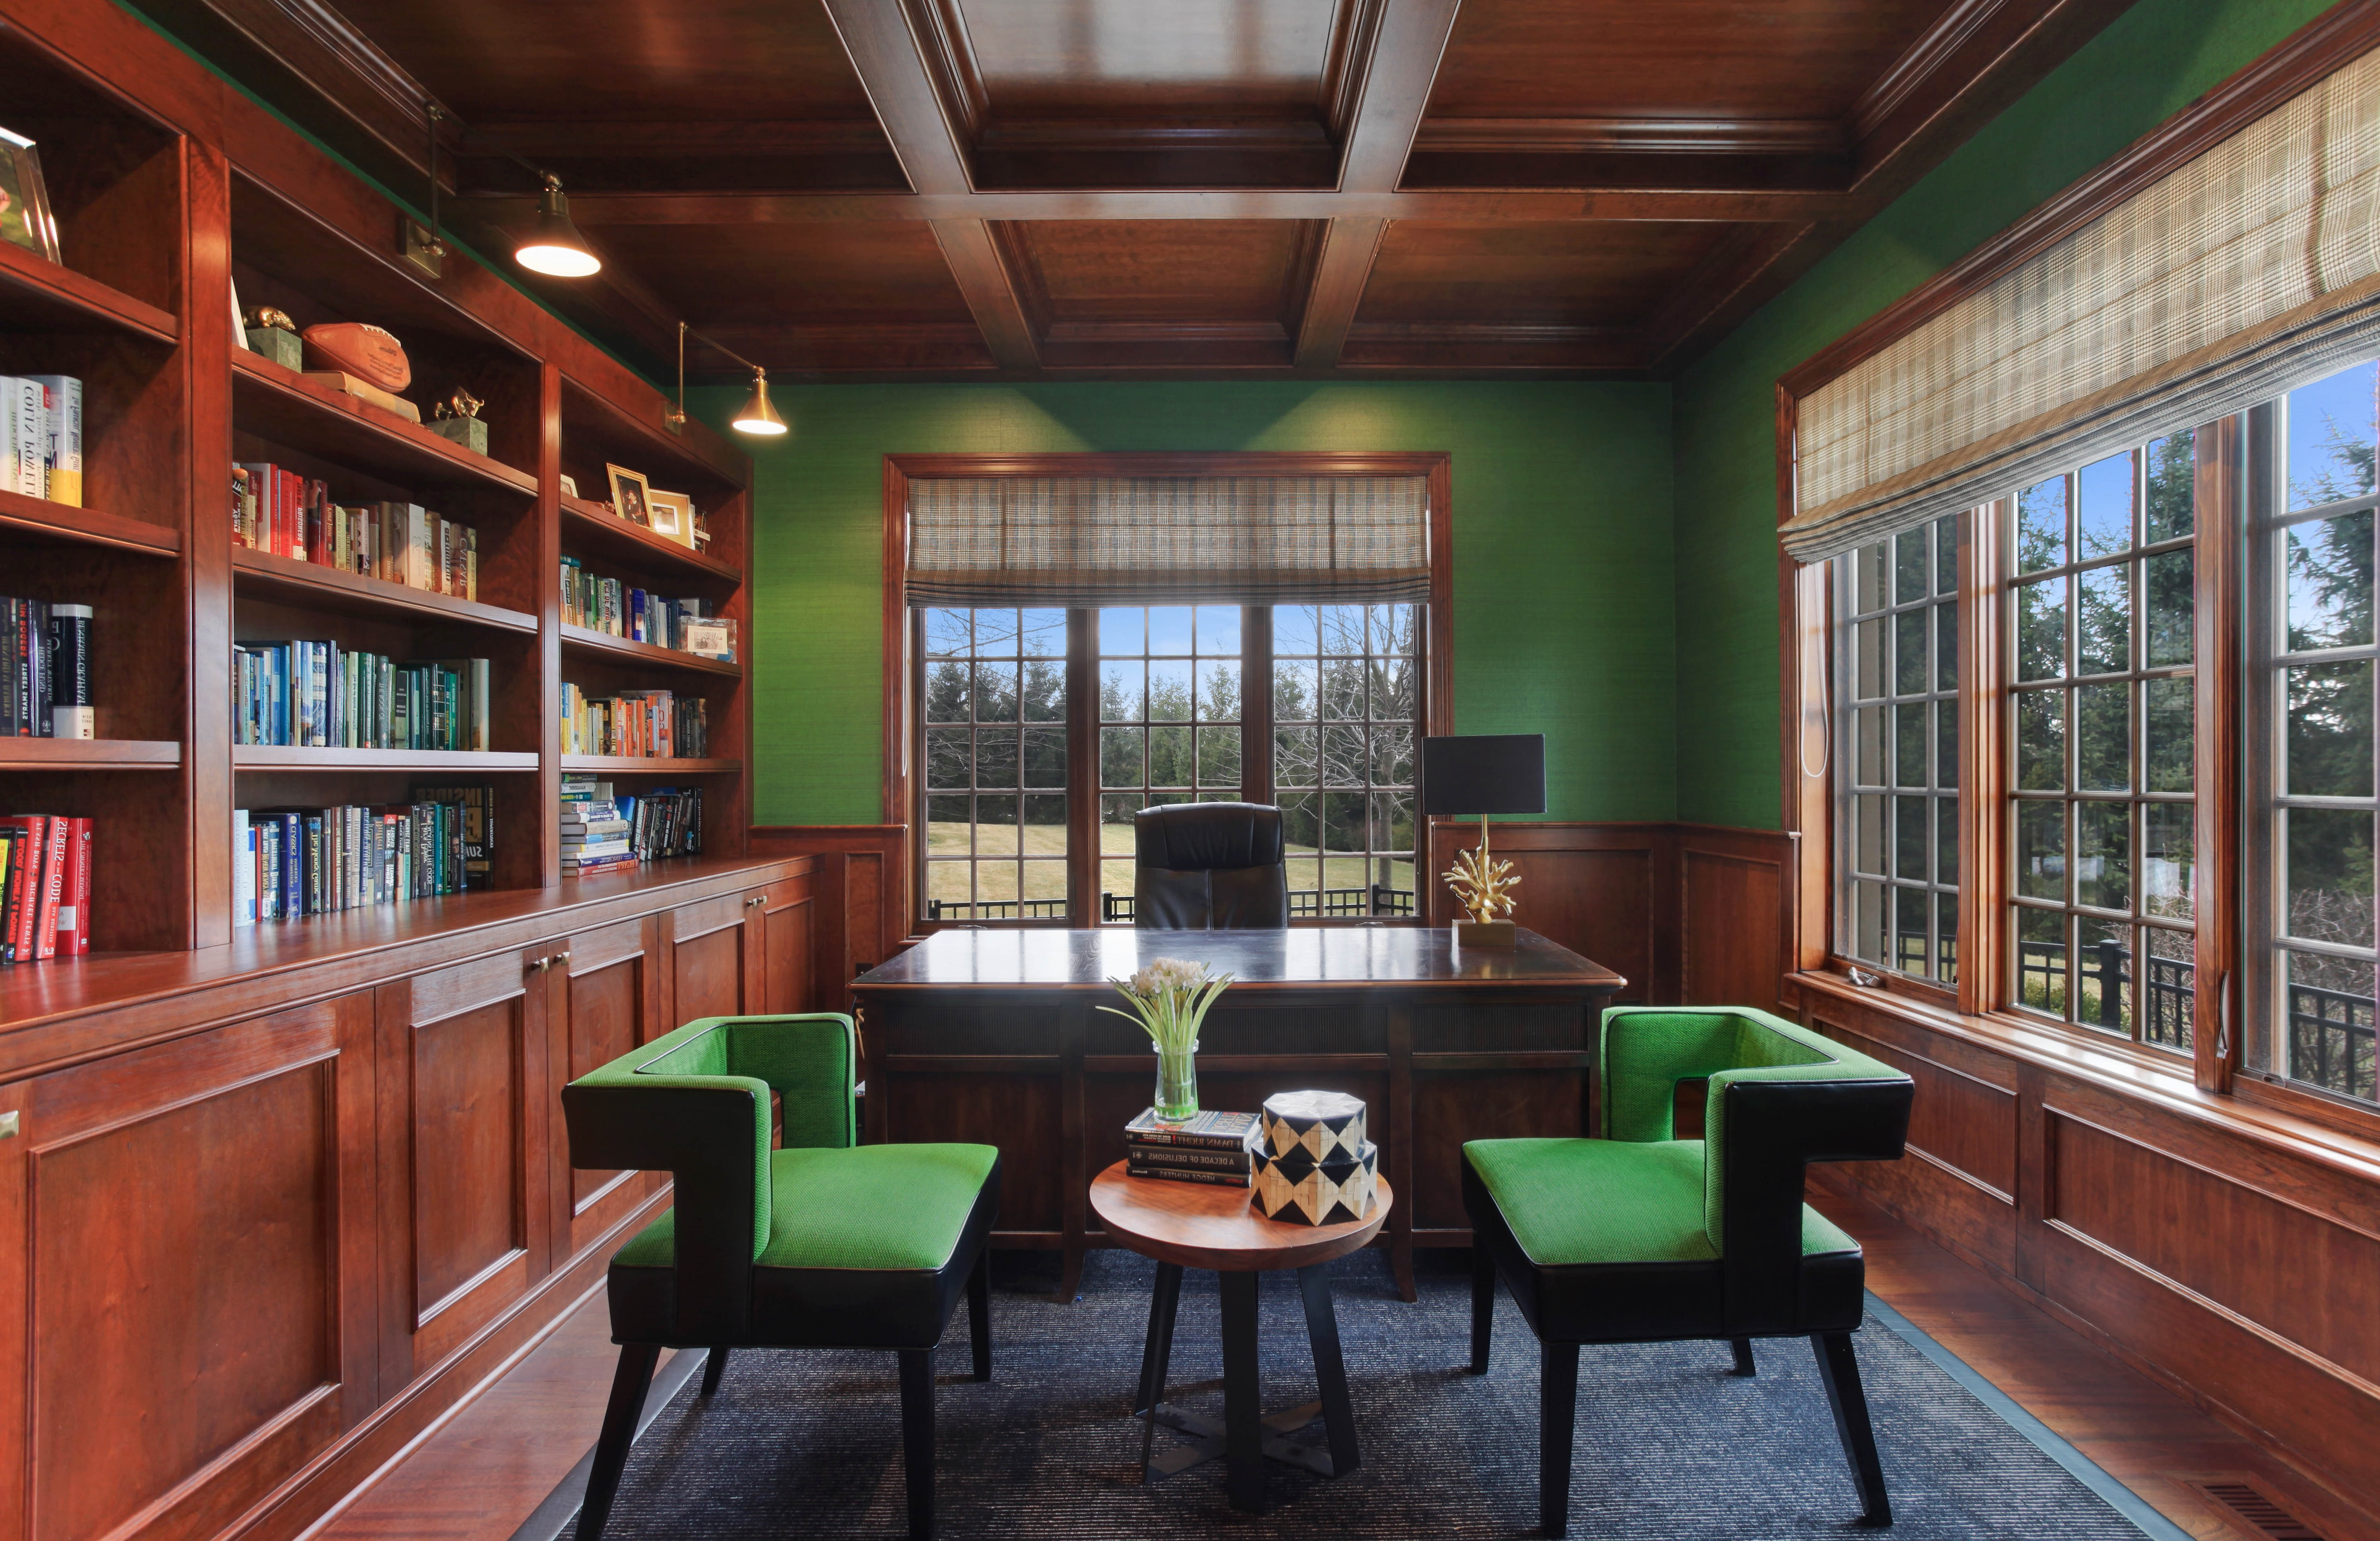 Contemporary Home Office With Chairs And Coffee Table (Image 8 of 50)